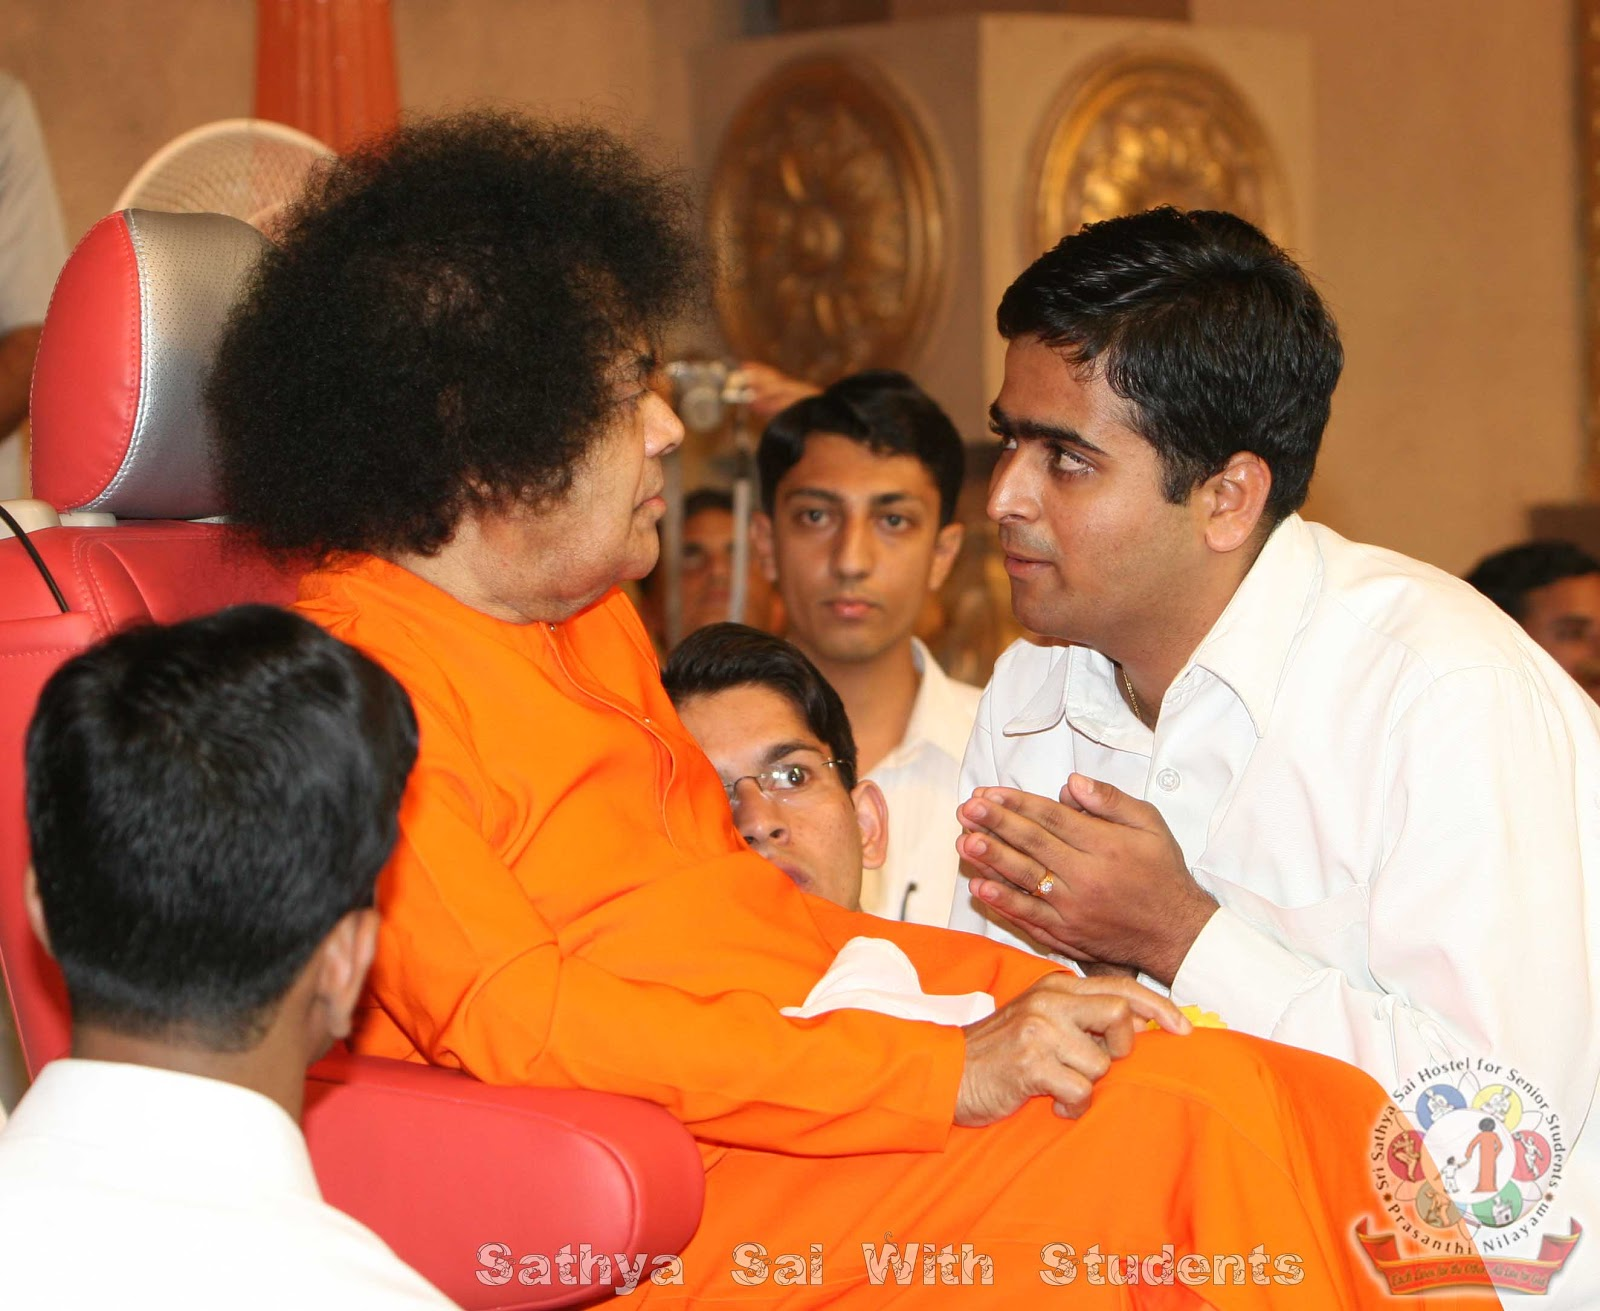 Sathya Sai with Students: Our Wonderful Lord - By Dr  S